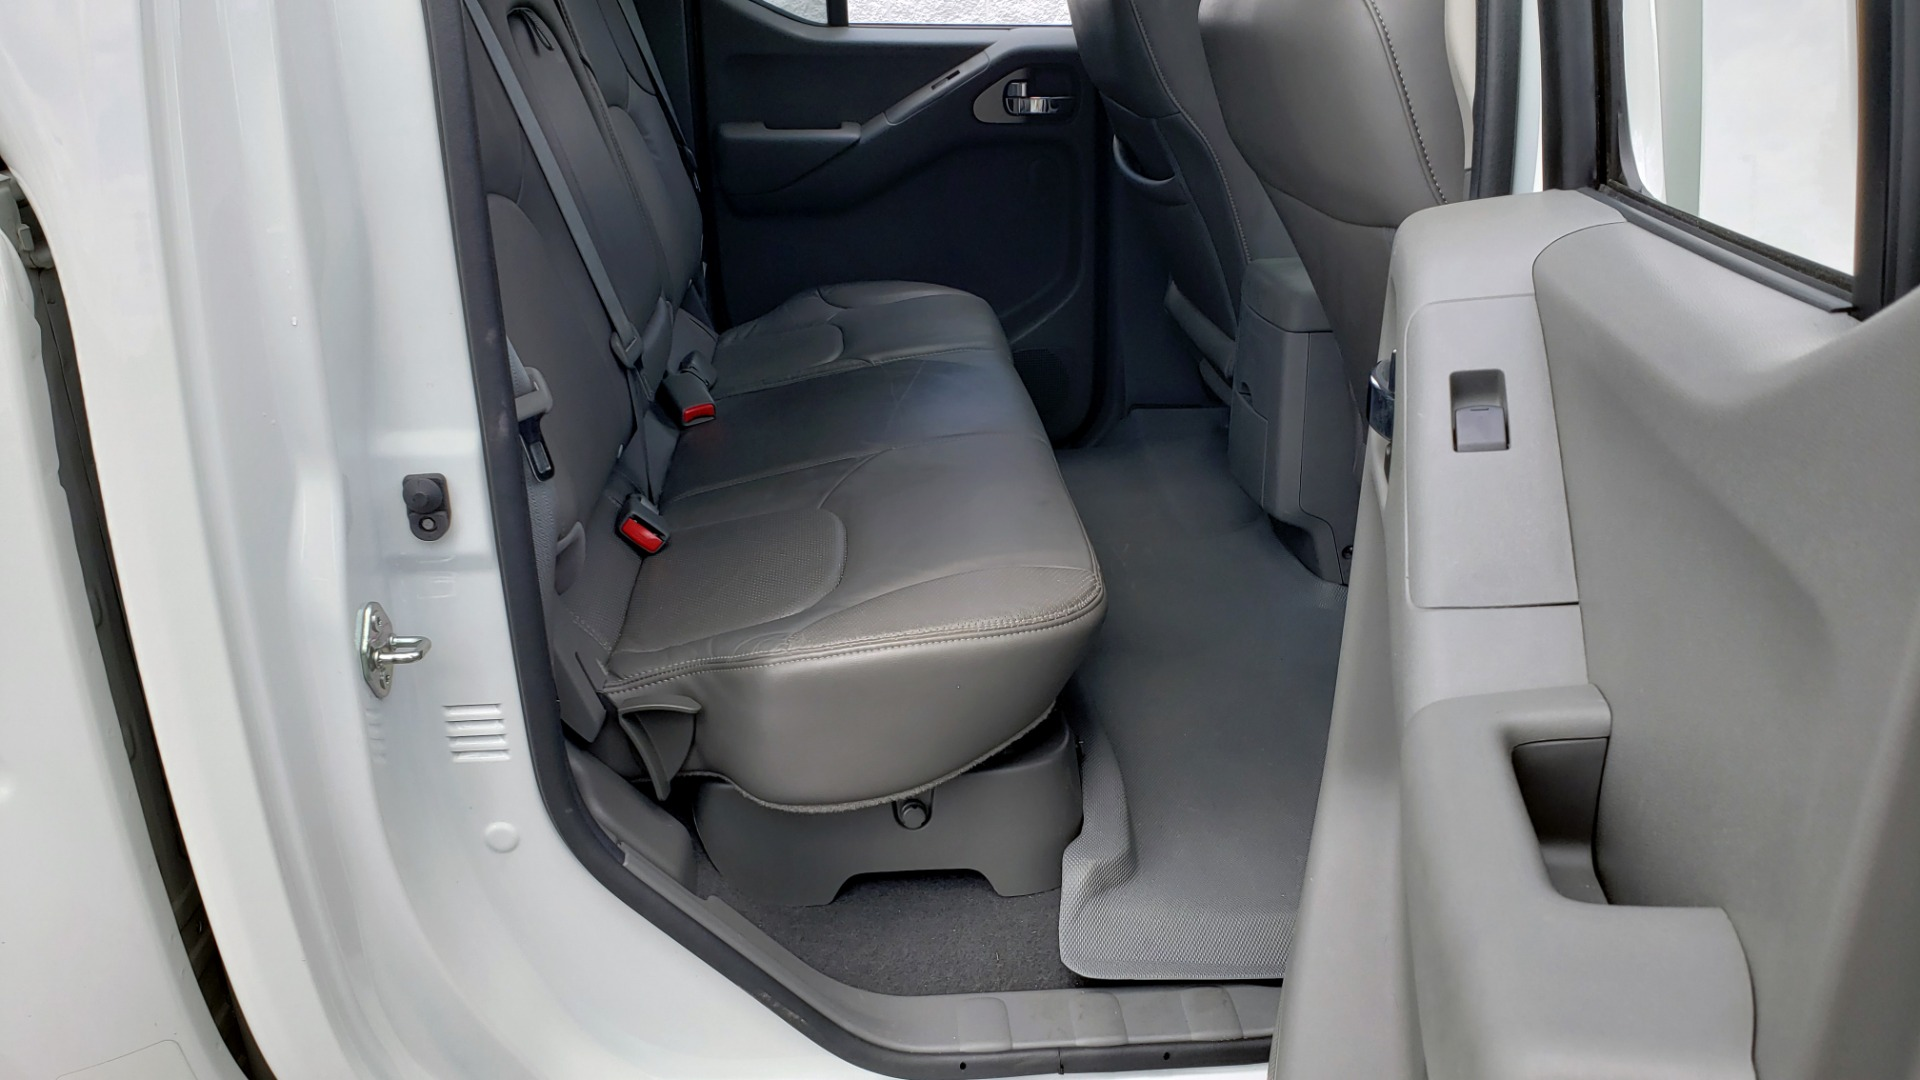 Used 2019 Nissan FRONTIER SL CREW CAB / 4X4 / NAV / SUNROOF / ROCKFORD FOSGATE / LOADED for sale $31,495 at Formula Imports in Charlotte NC 28227 65